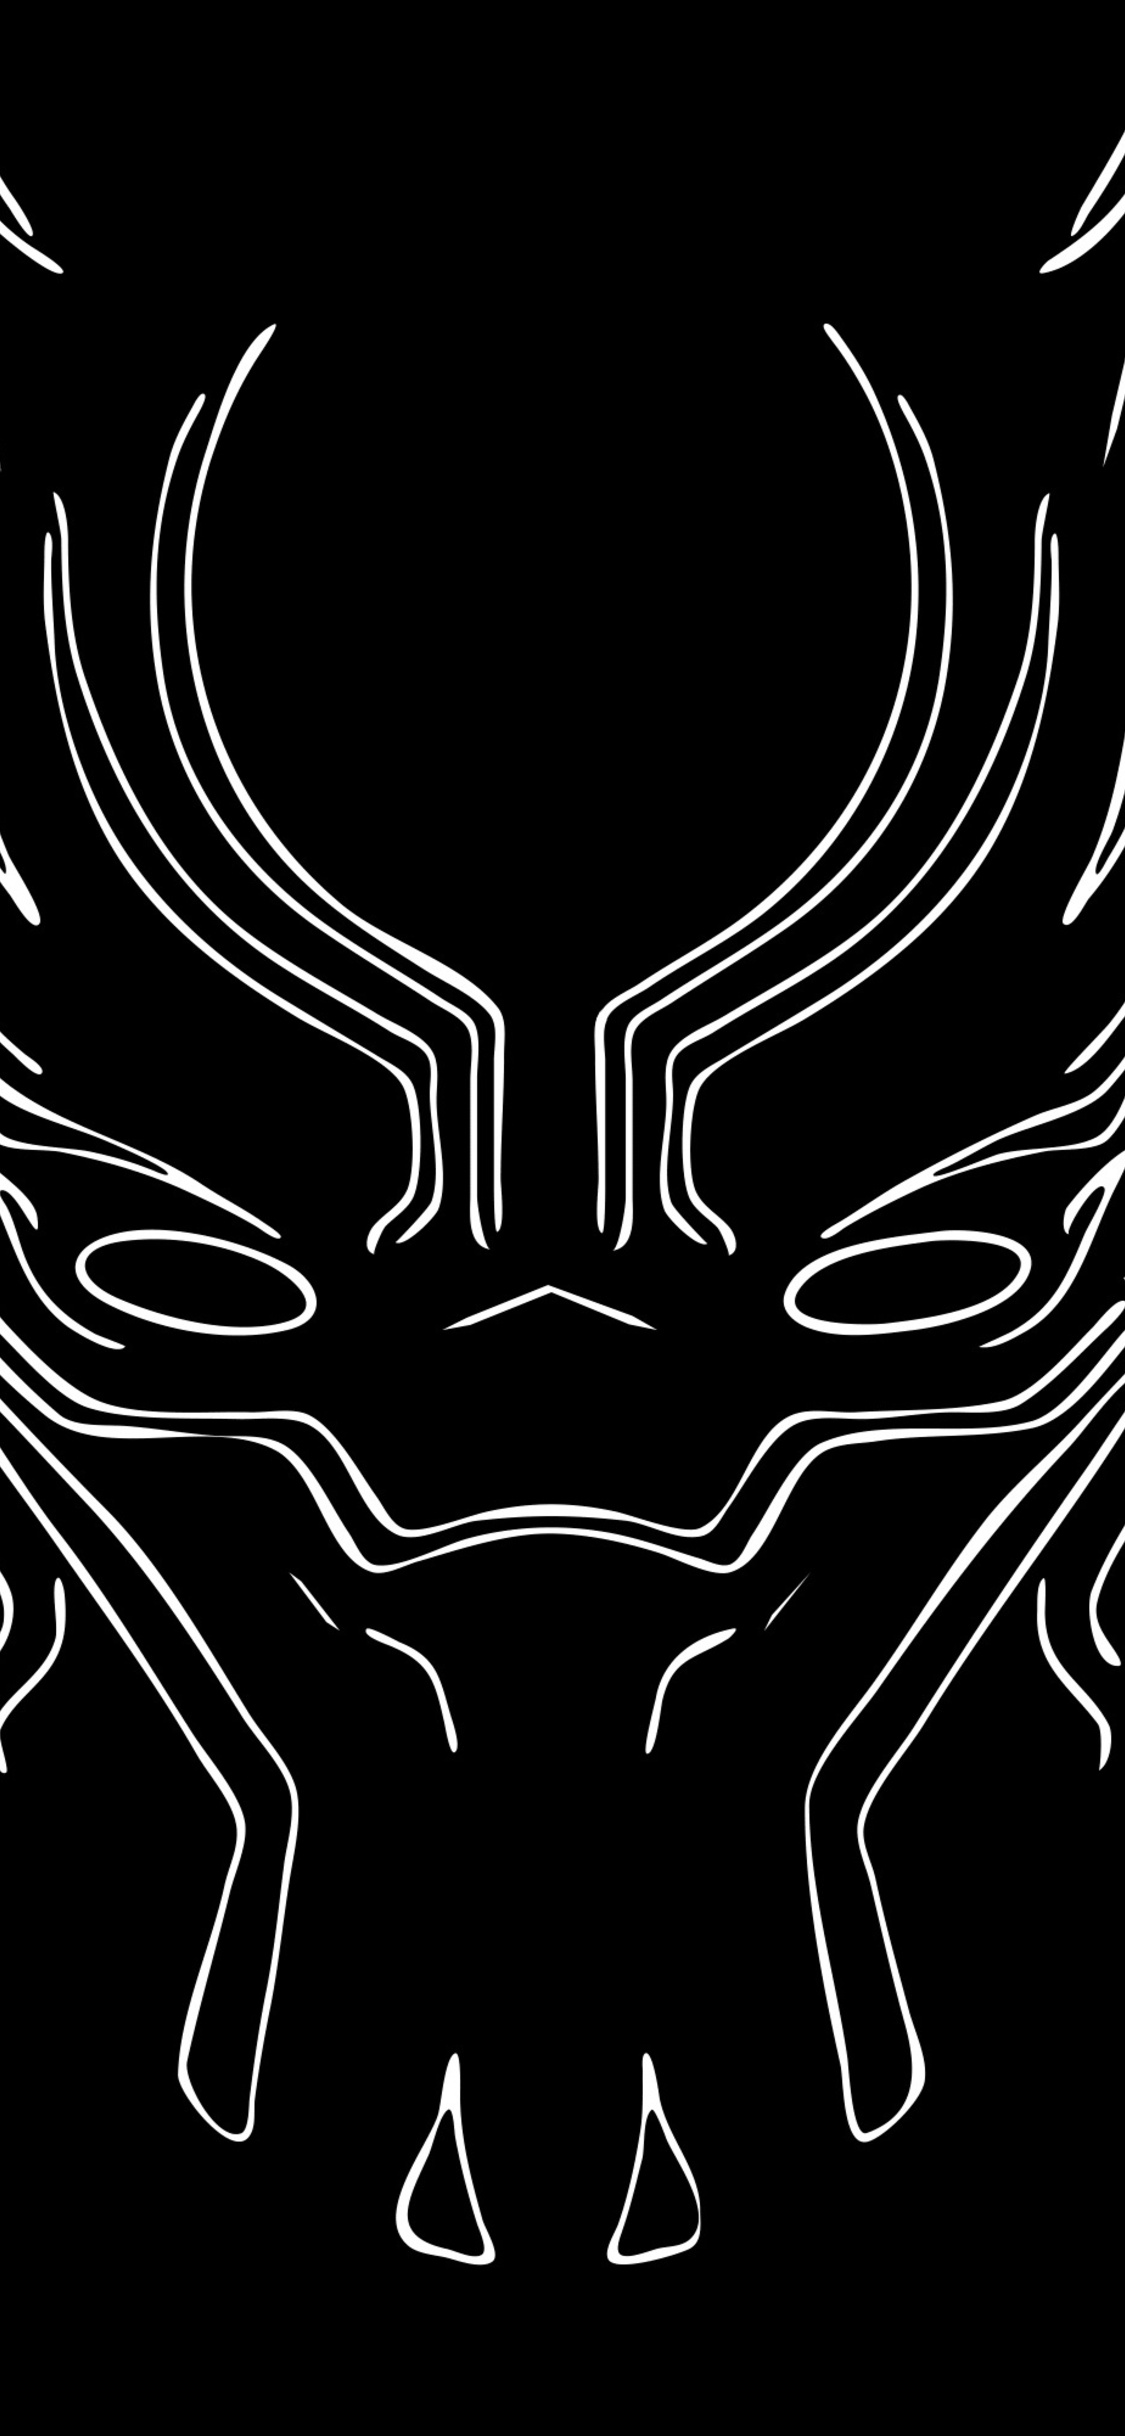 1125x2436 Black Panther 4k Artwork Iphone Xs Iphone 10 Iphone X Hd